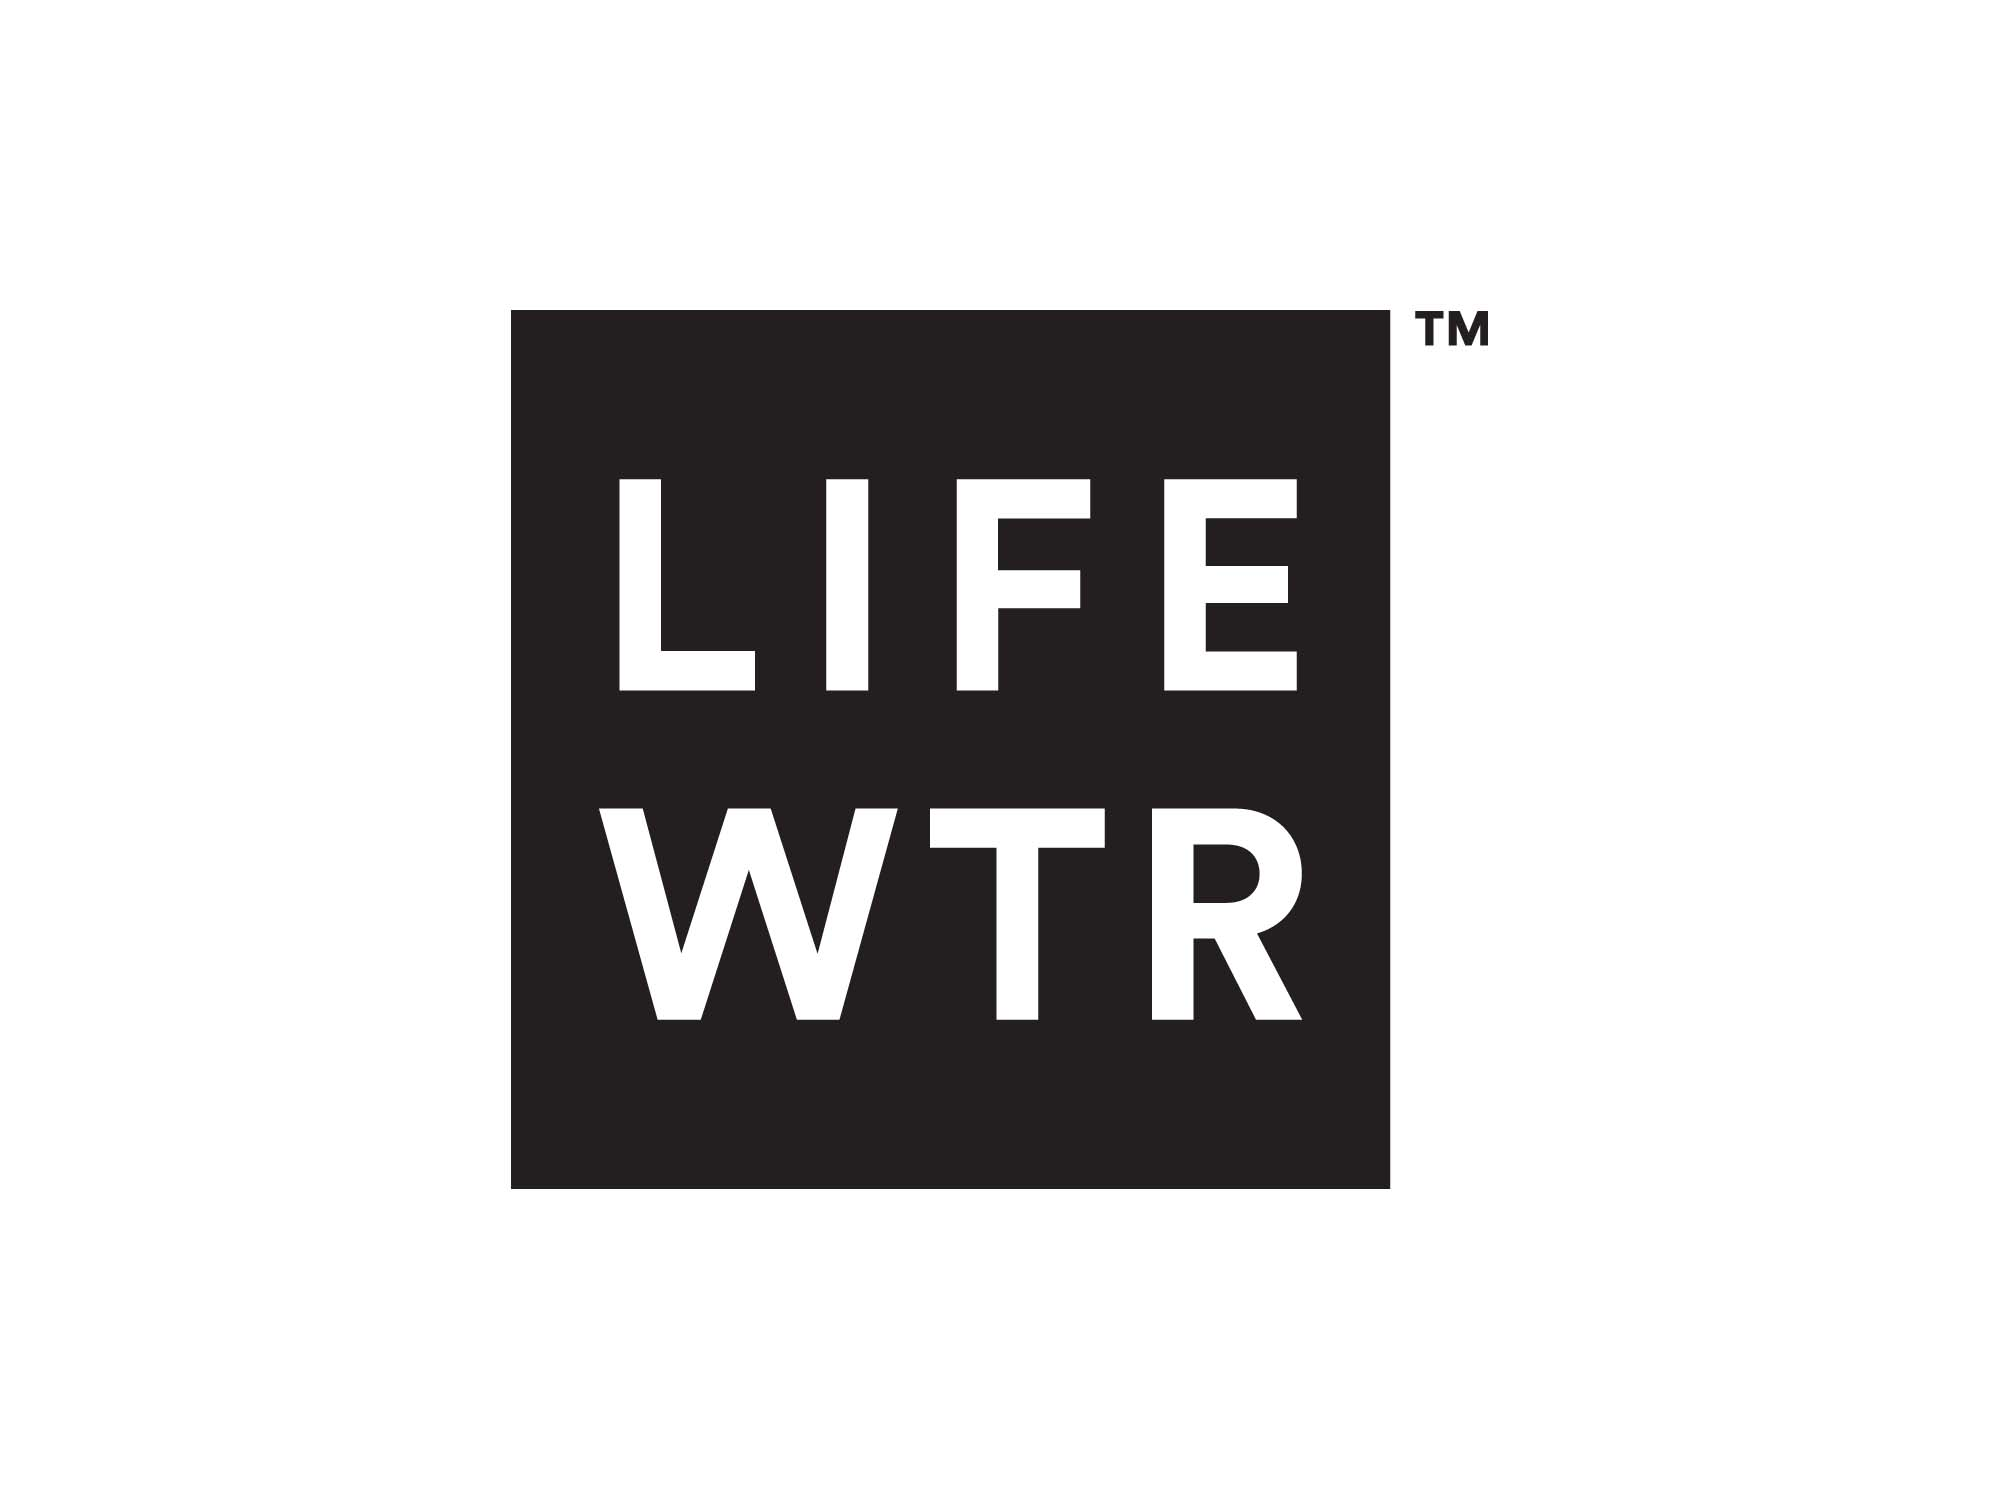 LIFEWTR from PepsiCo, a premium bottled water, fuses creativity & design to serve as a source of inspiration & hydration. LIFEWTR is a purified water, pH balanced with electrolytes added for taste.